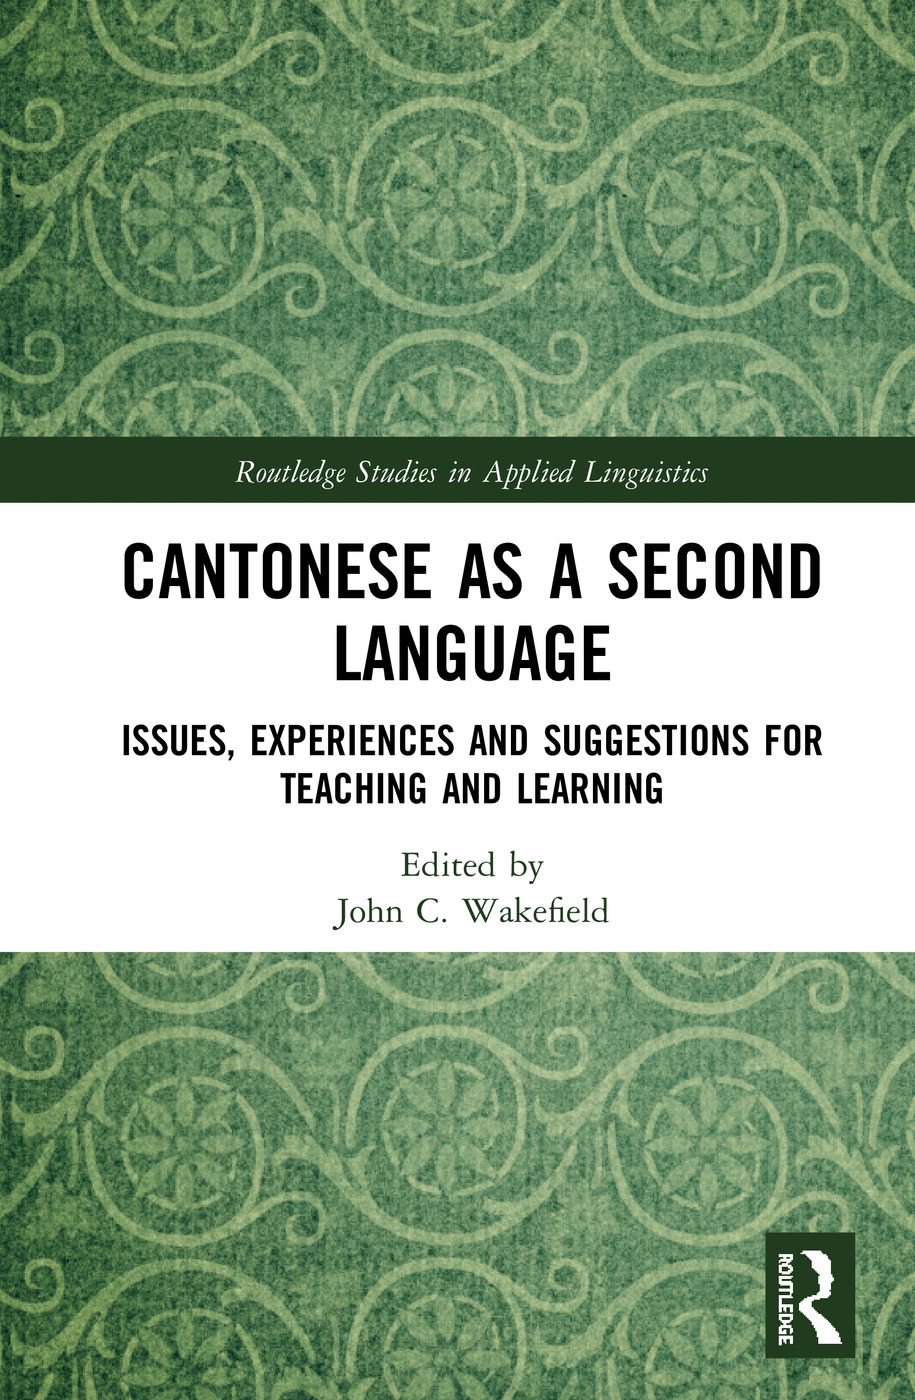 Cantonese as a Second Language: Issues, Experiences and Suggestions for Teaching and Learning book cover